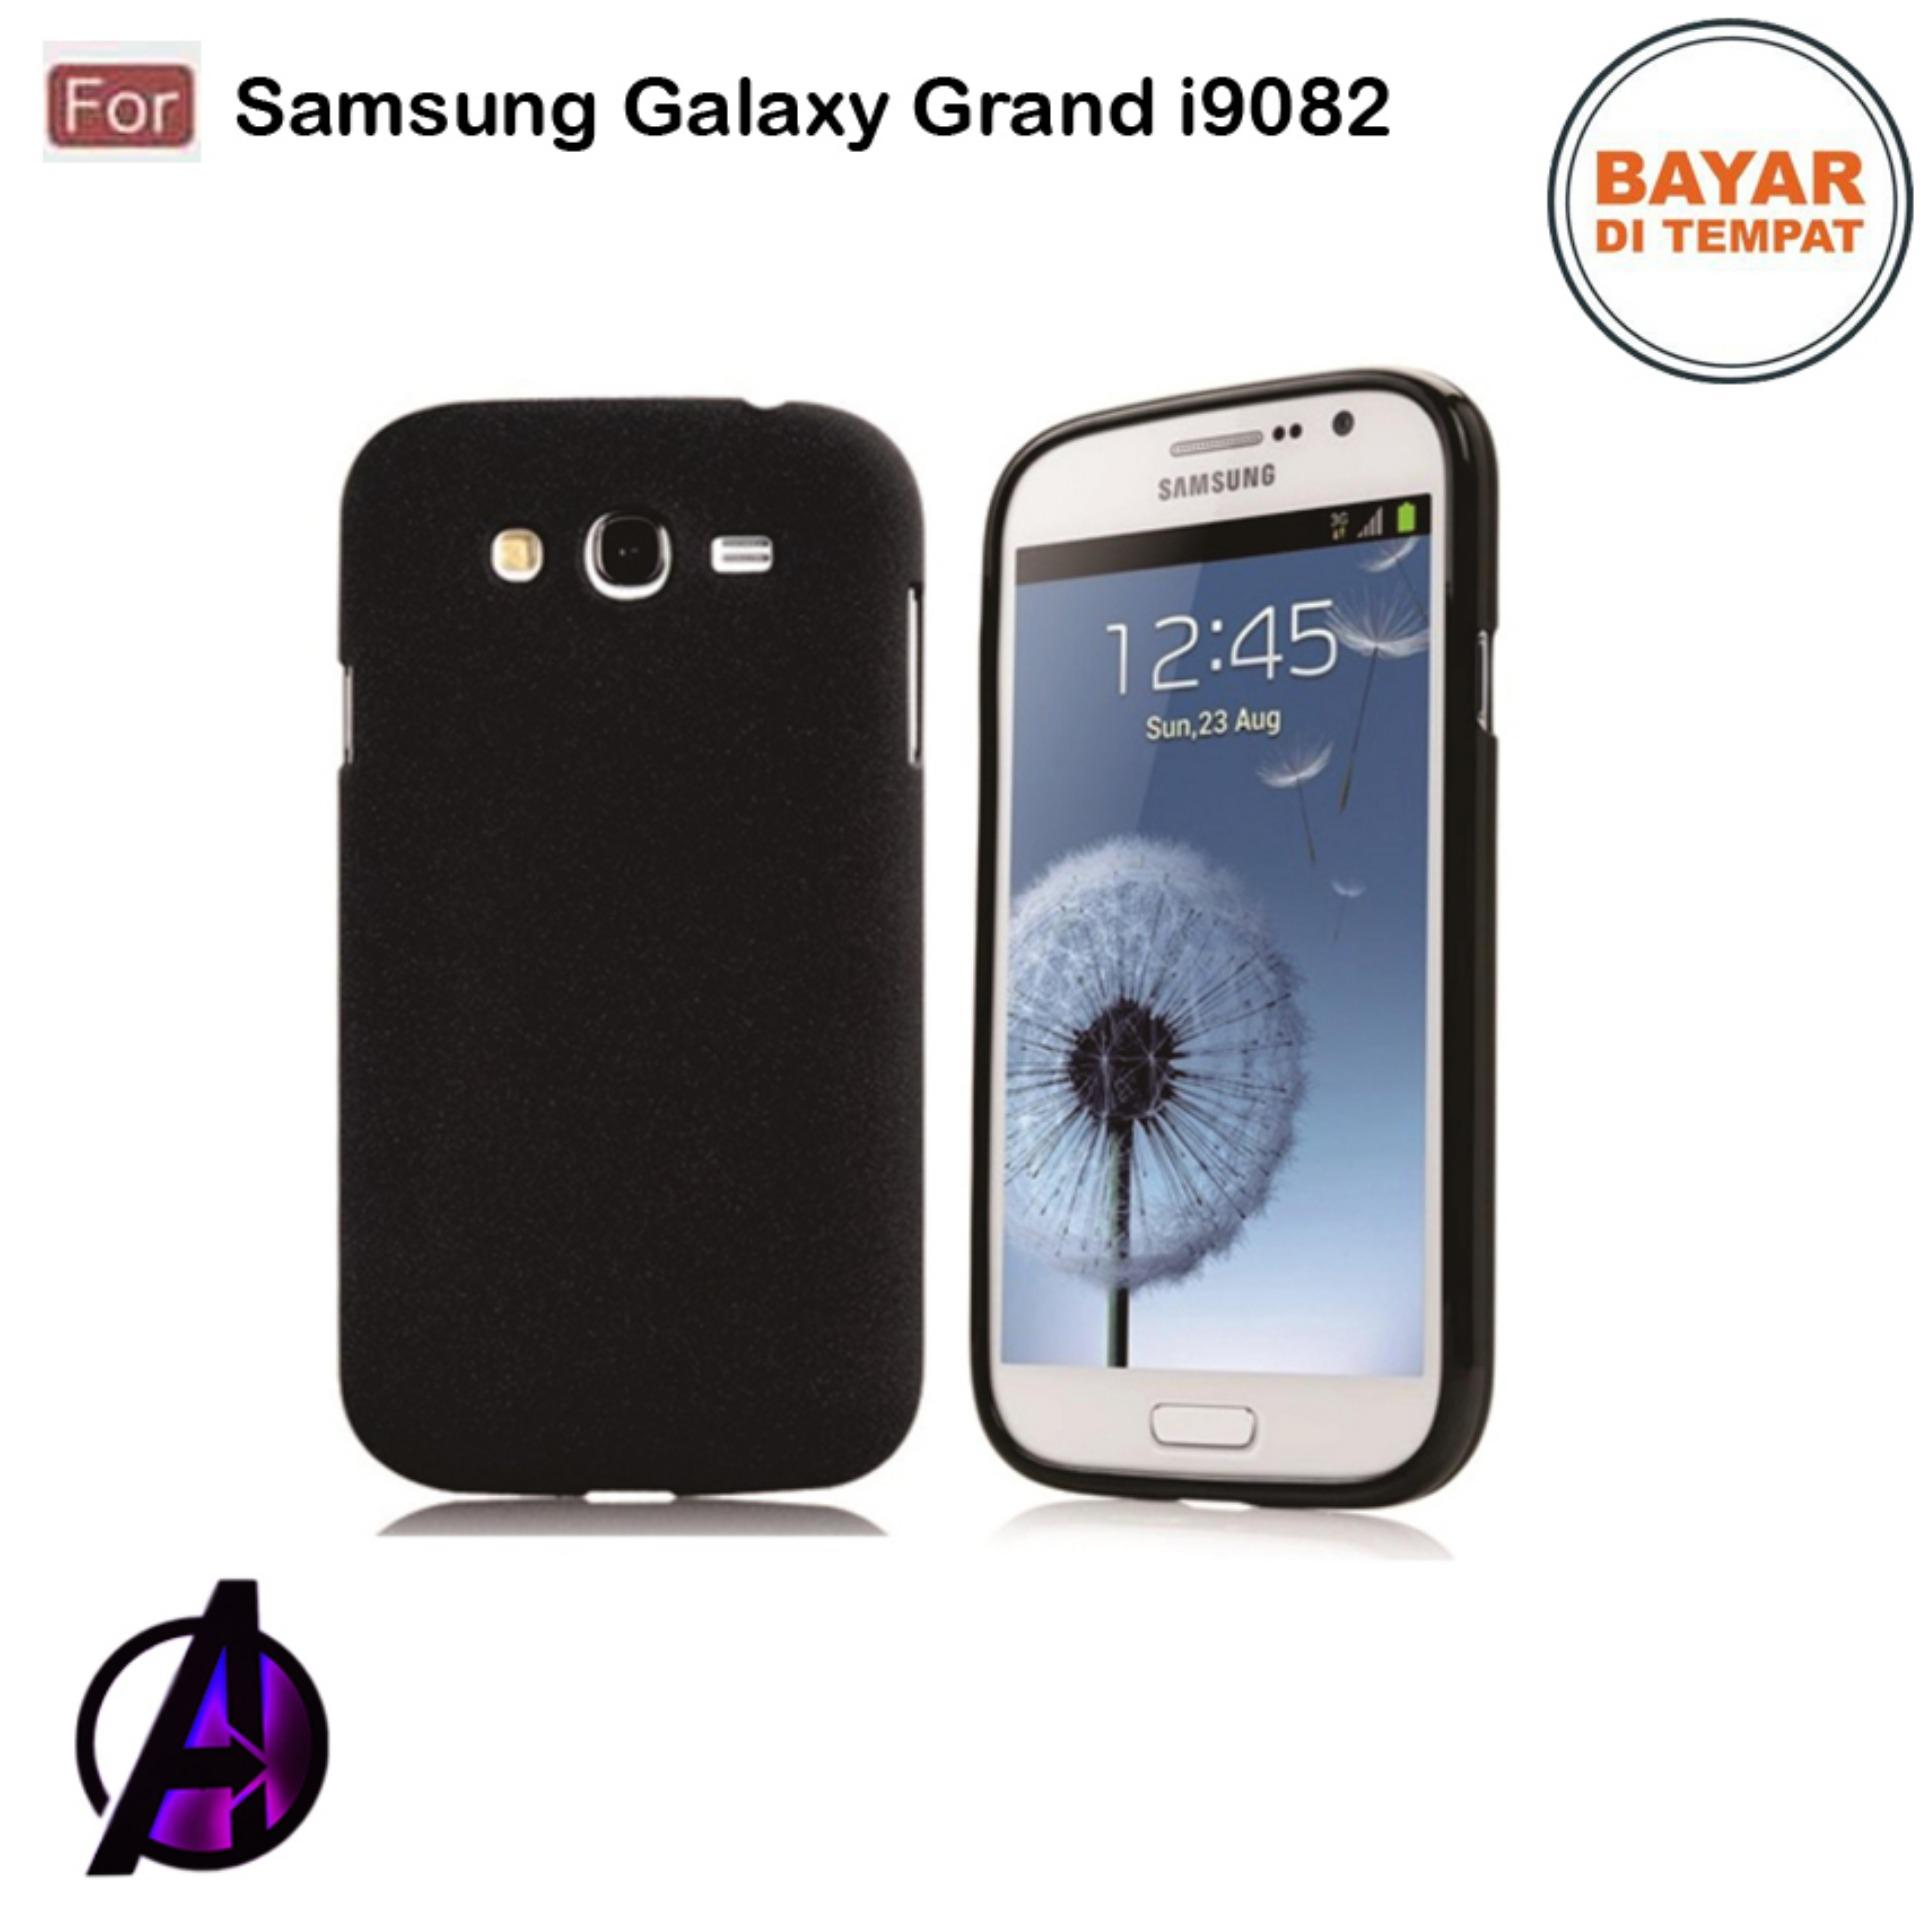 Kondom Hp / Softcase / Casing Ultraslim Case Matte Black Space Untuk Samsung Galaxy Grand 1 / i9082 / Grand Z / Grand Duos